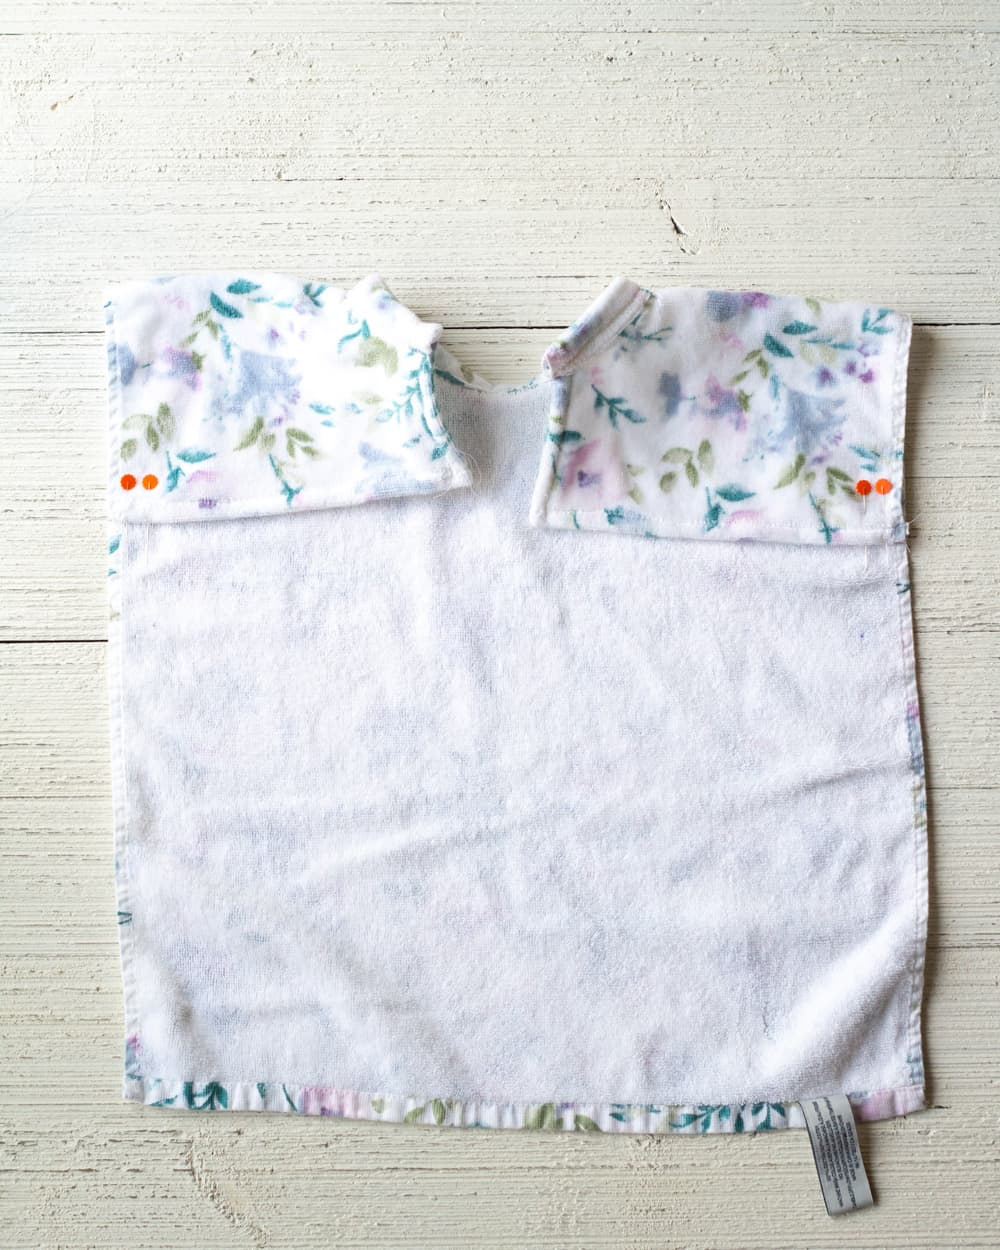 Folding down the edges of a kitchen towel to create a baby bib.